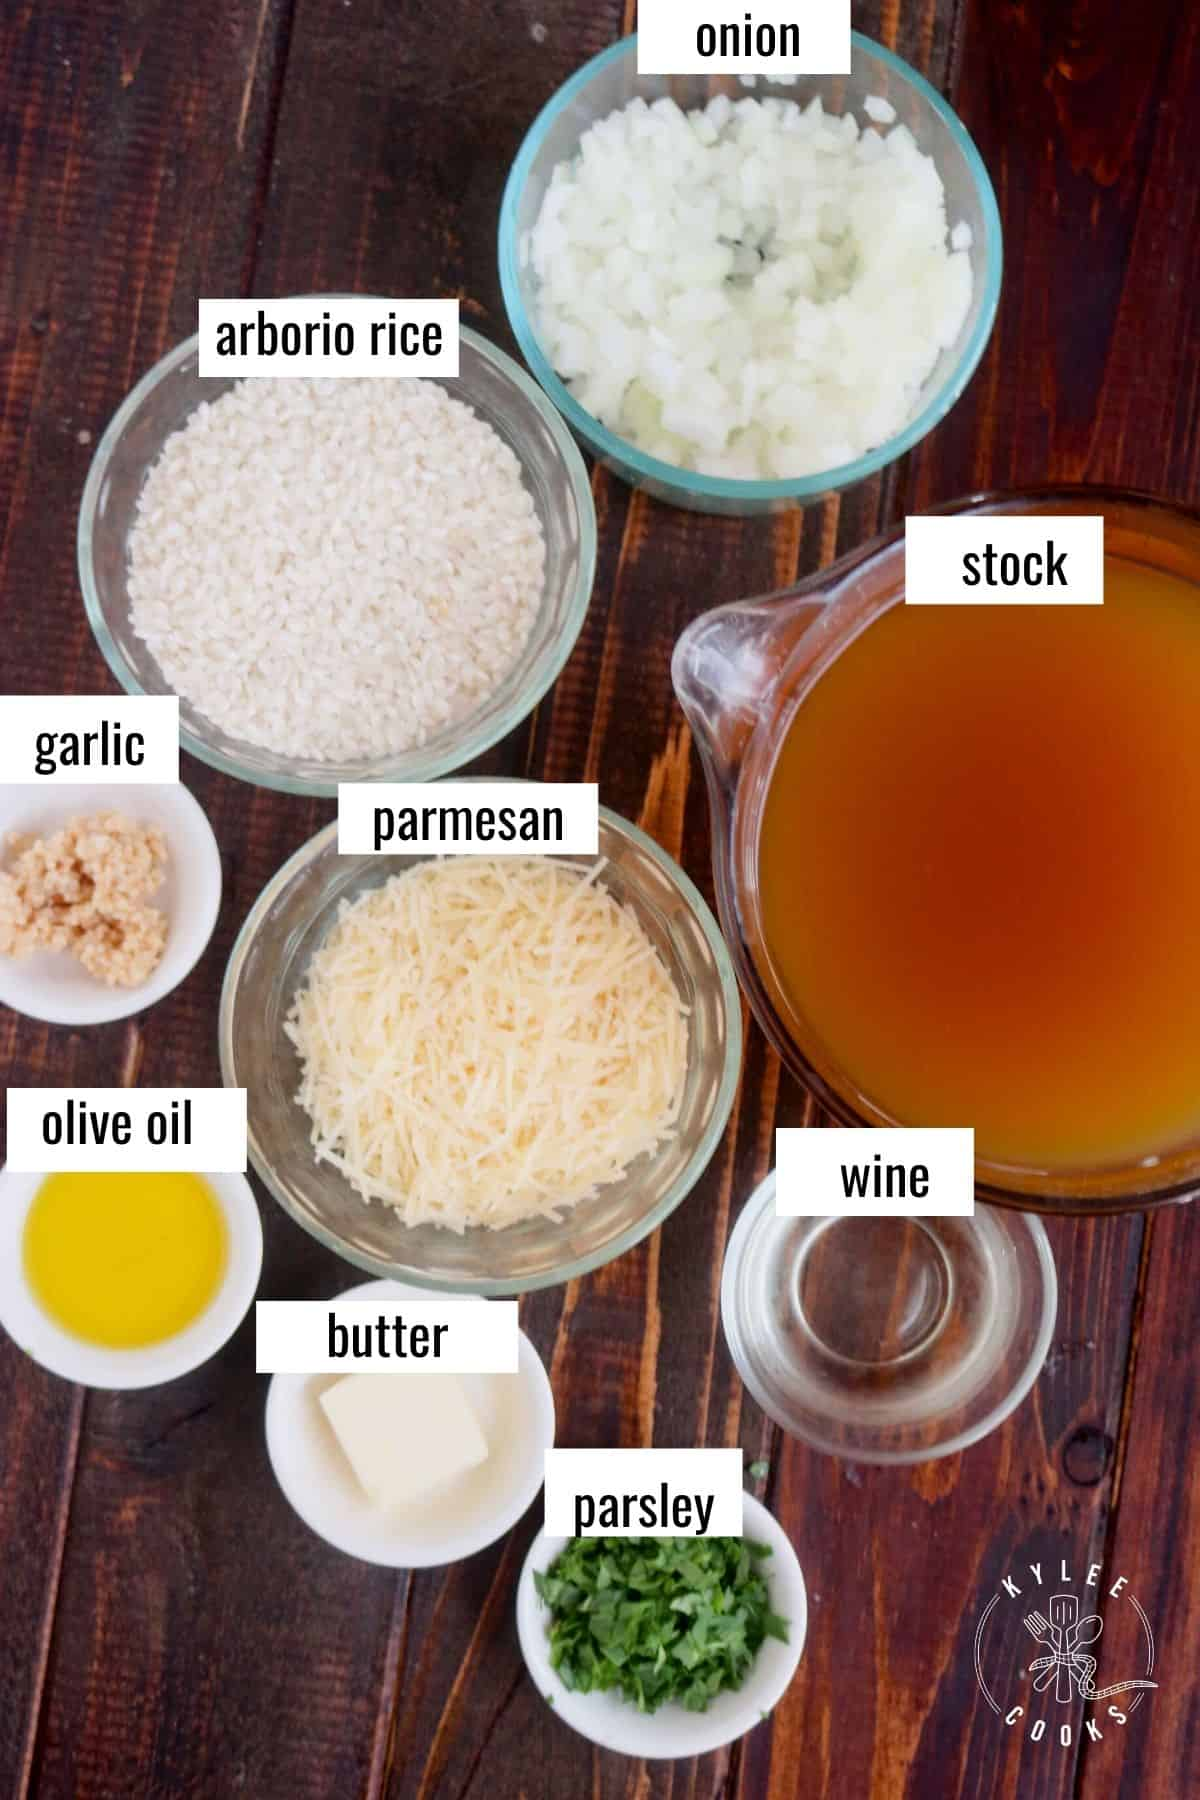 Risotto ingredients laid out